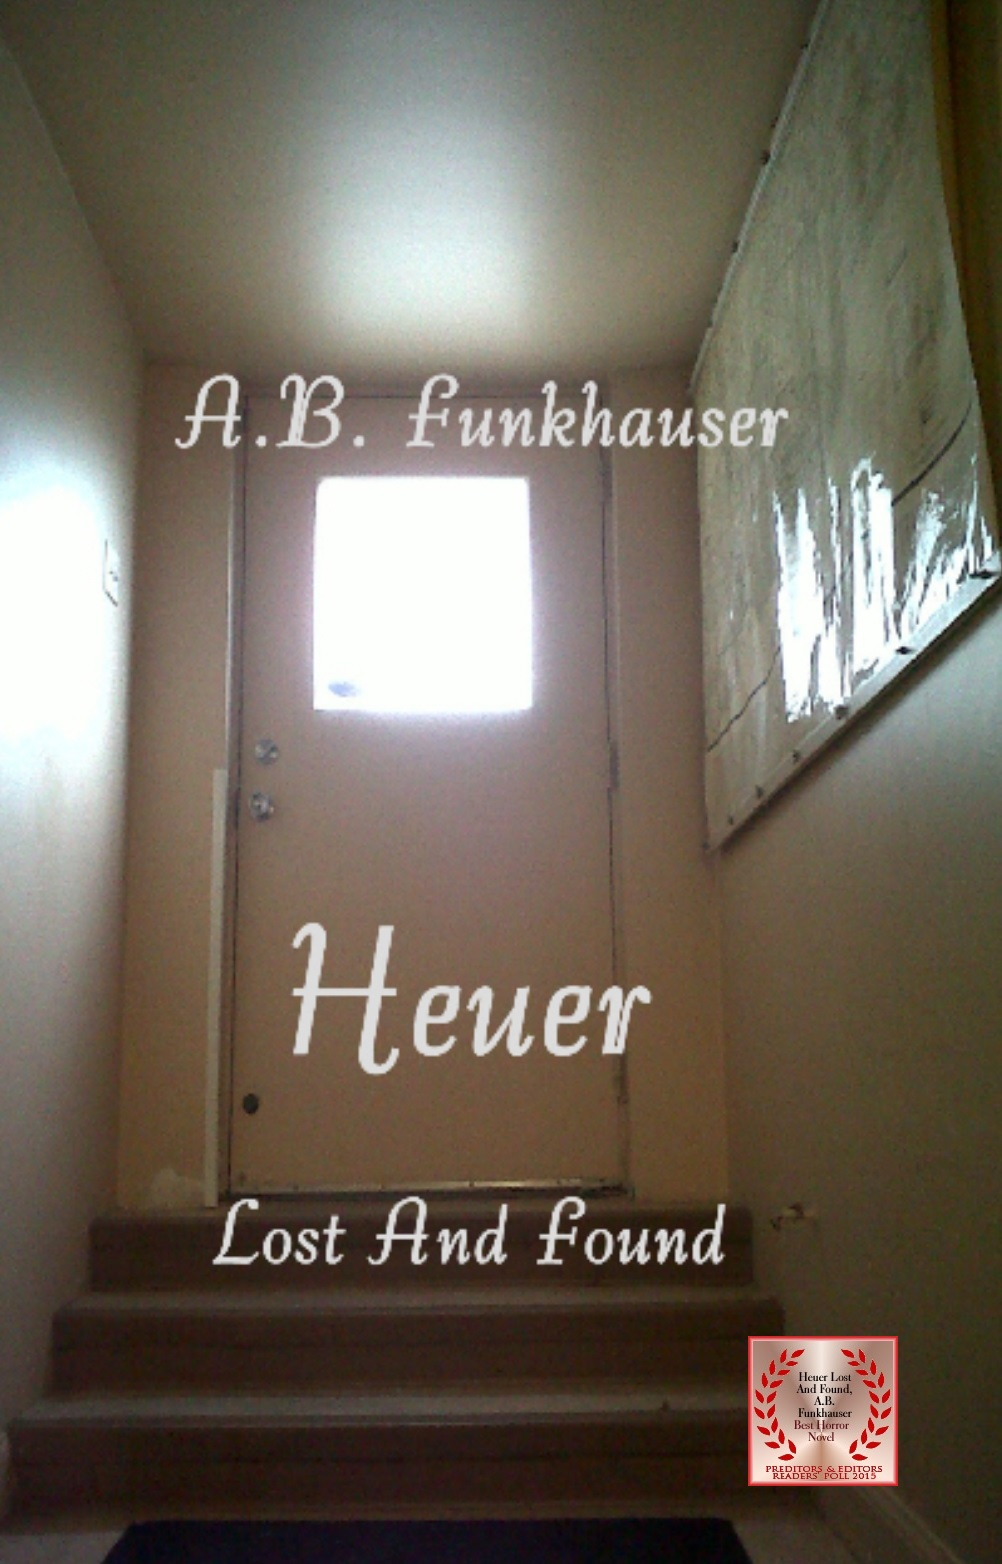 Heuer Lost and Found - award